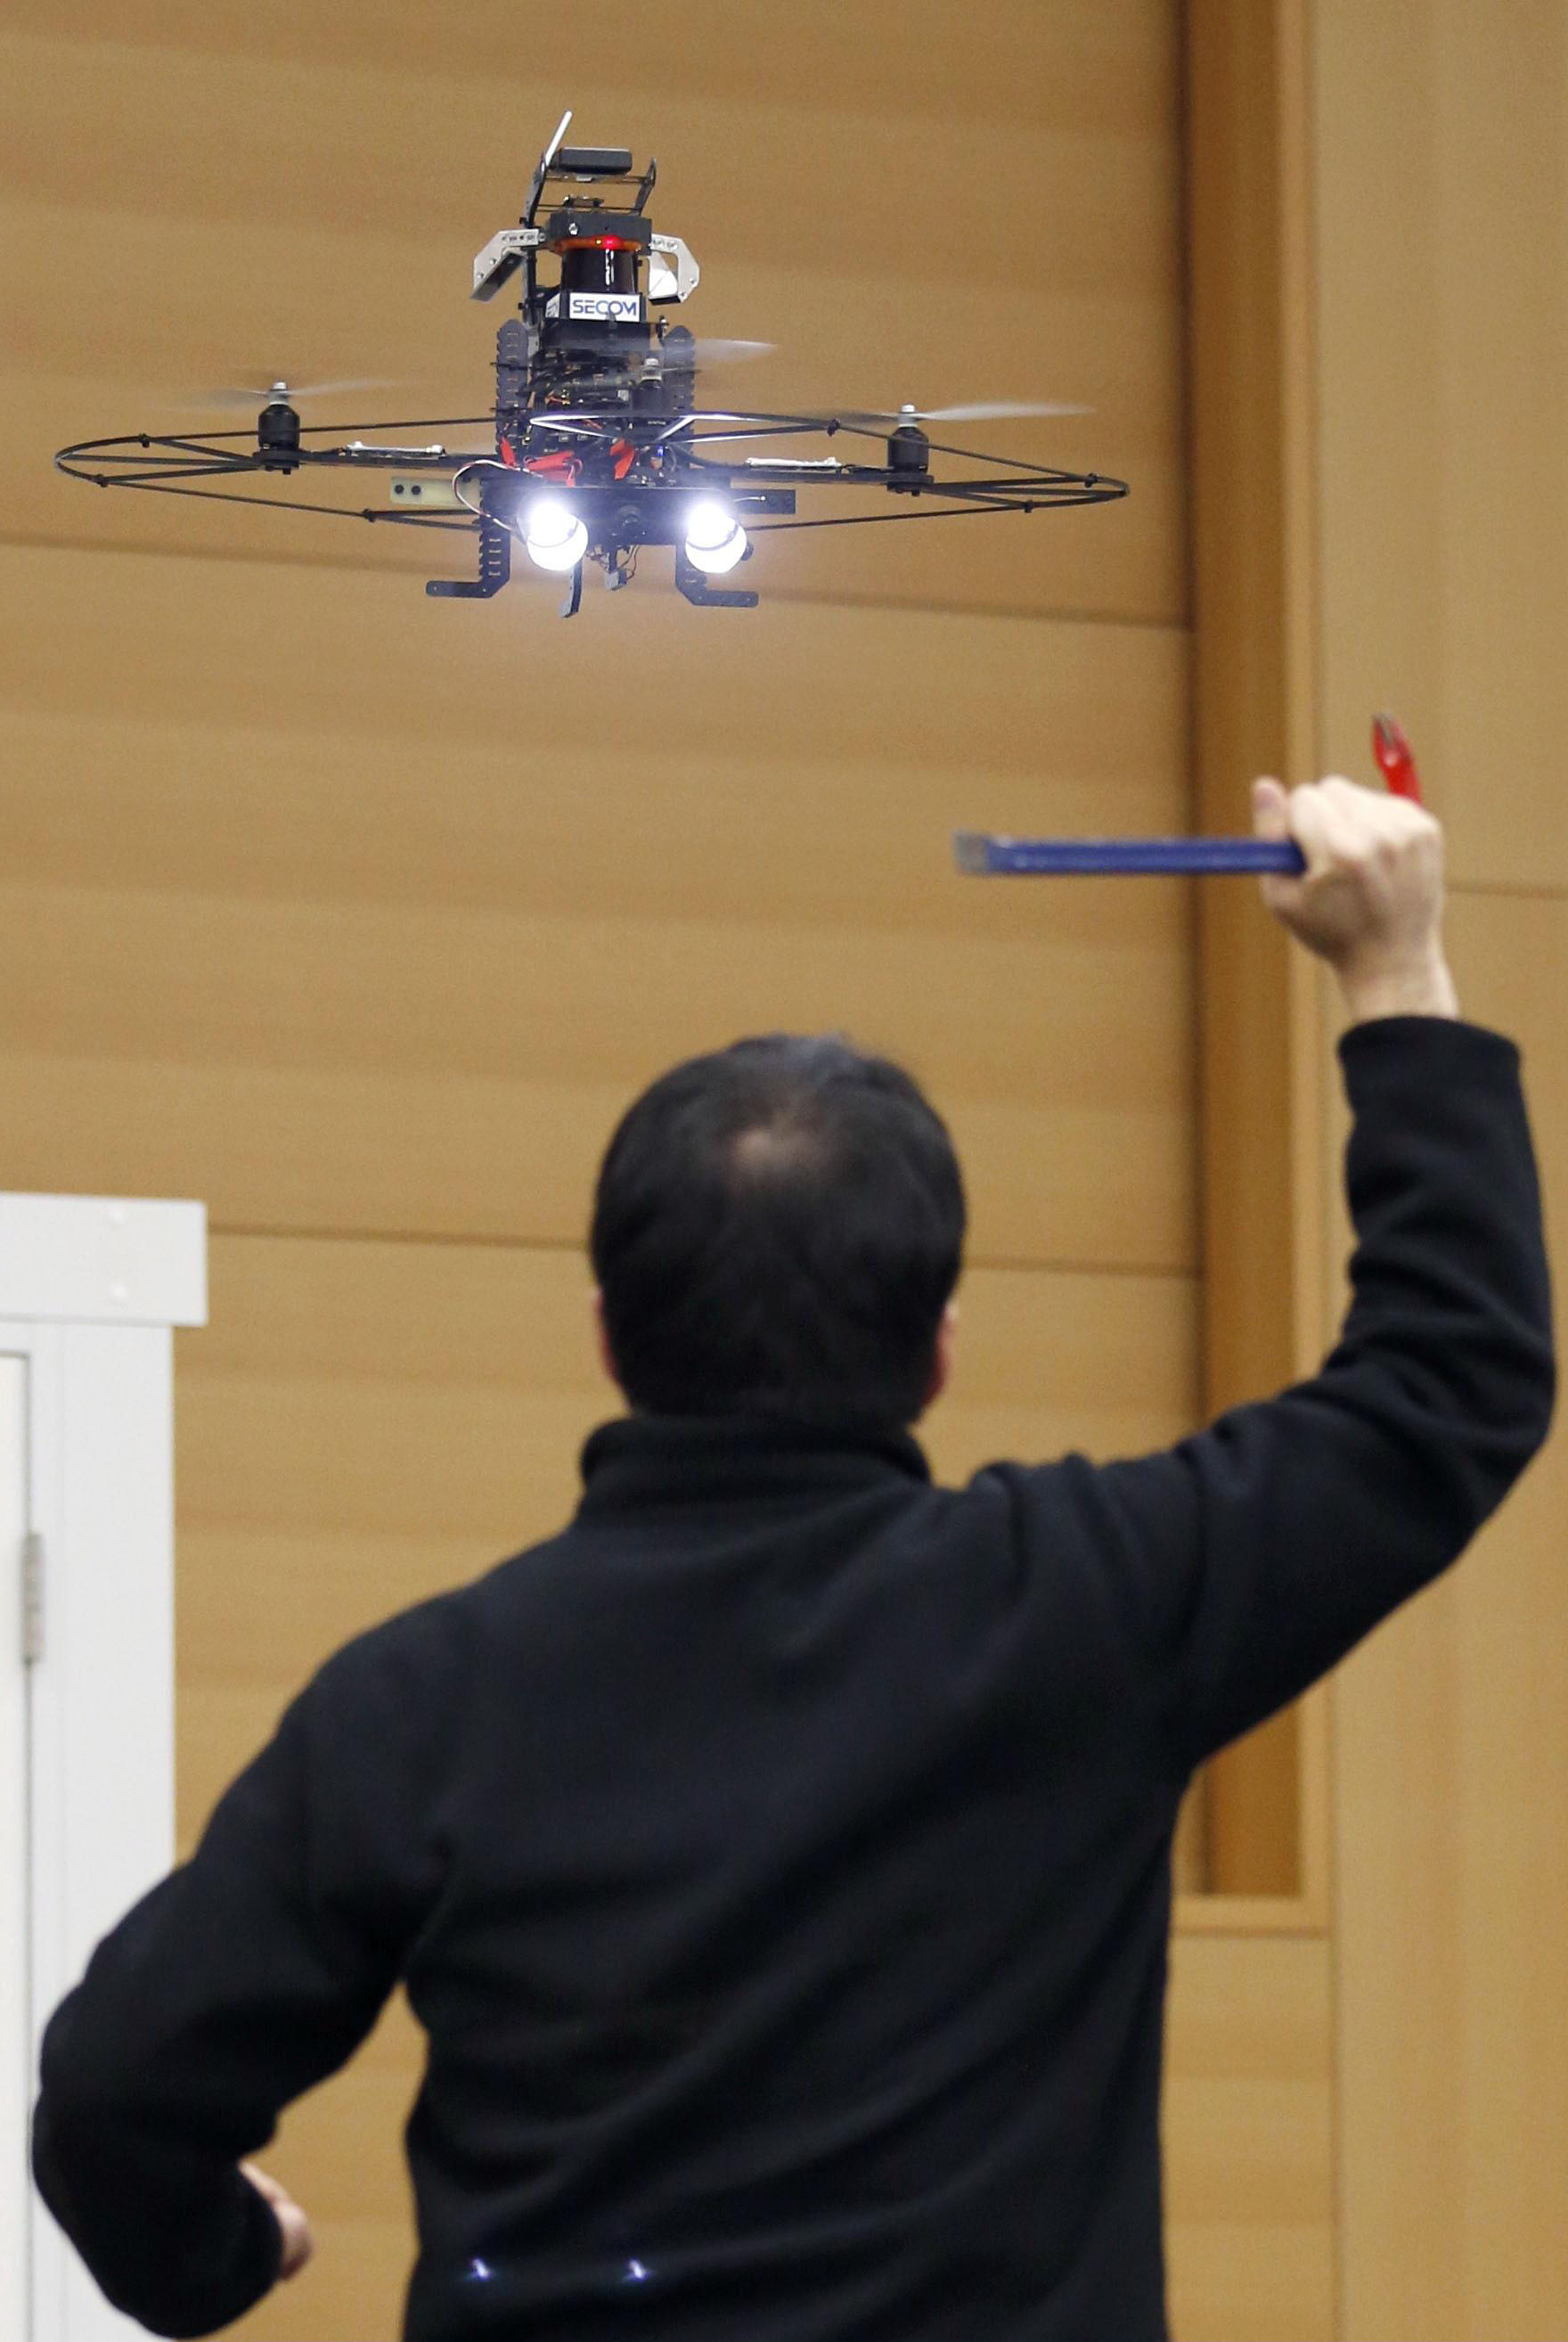 Big brother in Japan: A drone prototype is seen videotaping a man acting as an intruder near a building Wednesday. | KYODO